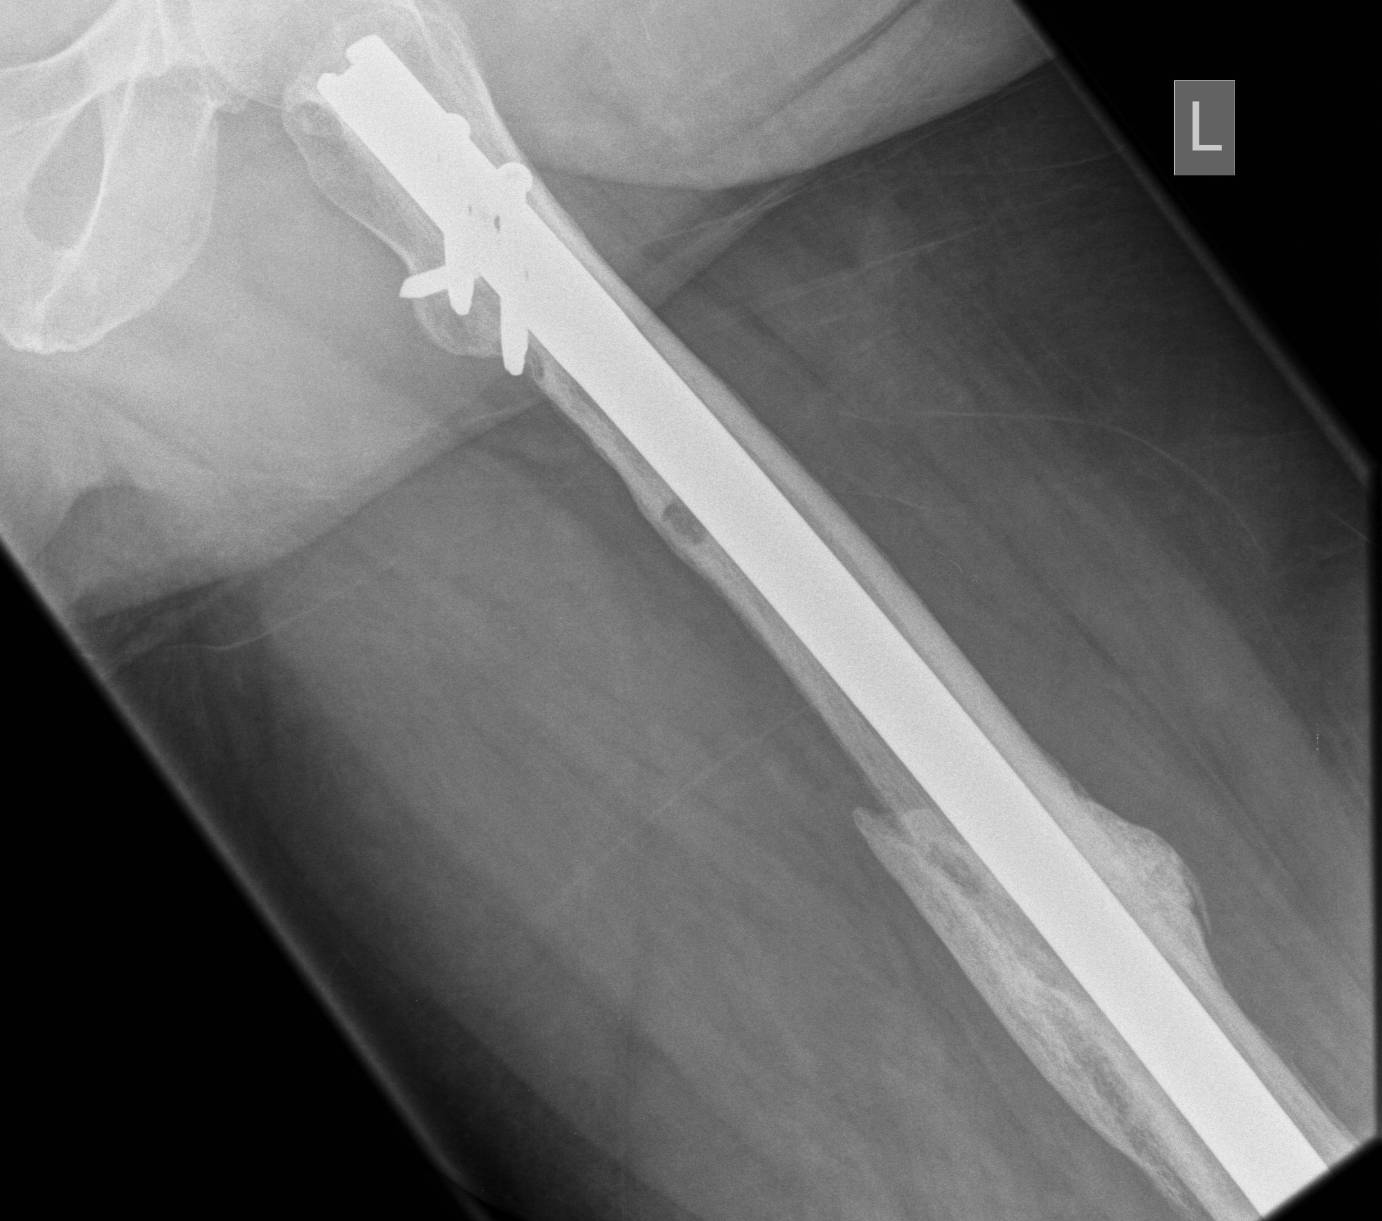 Infected Femoral Nail United Lateral